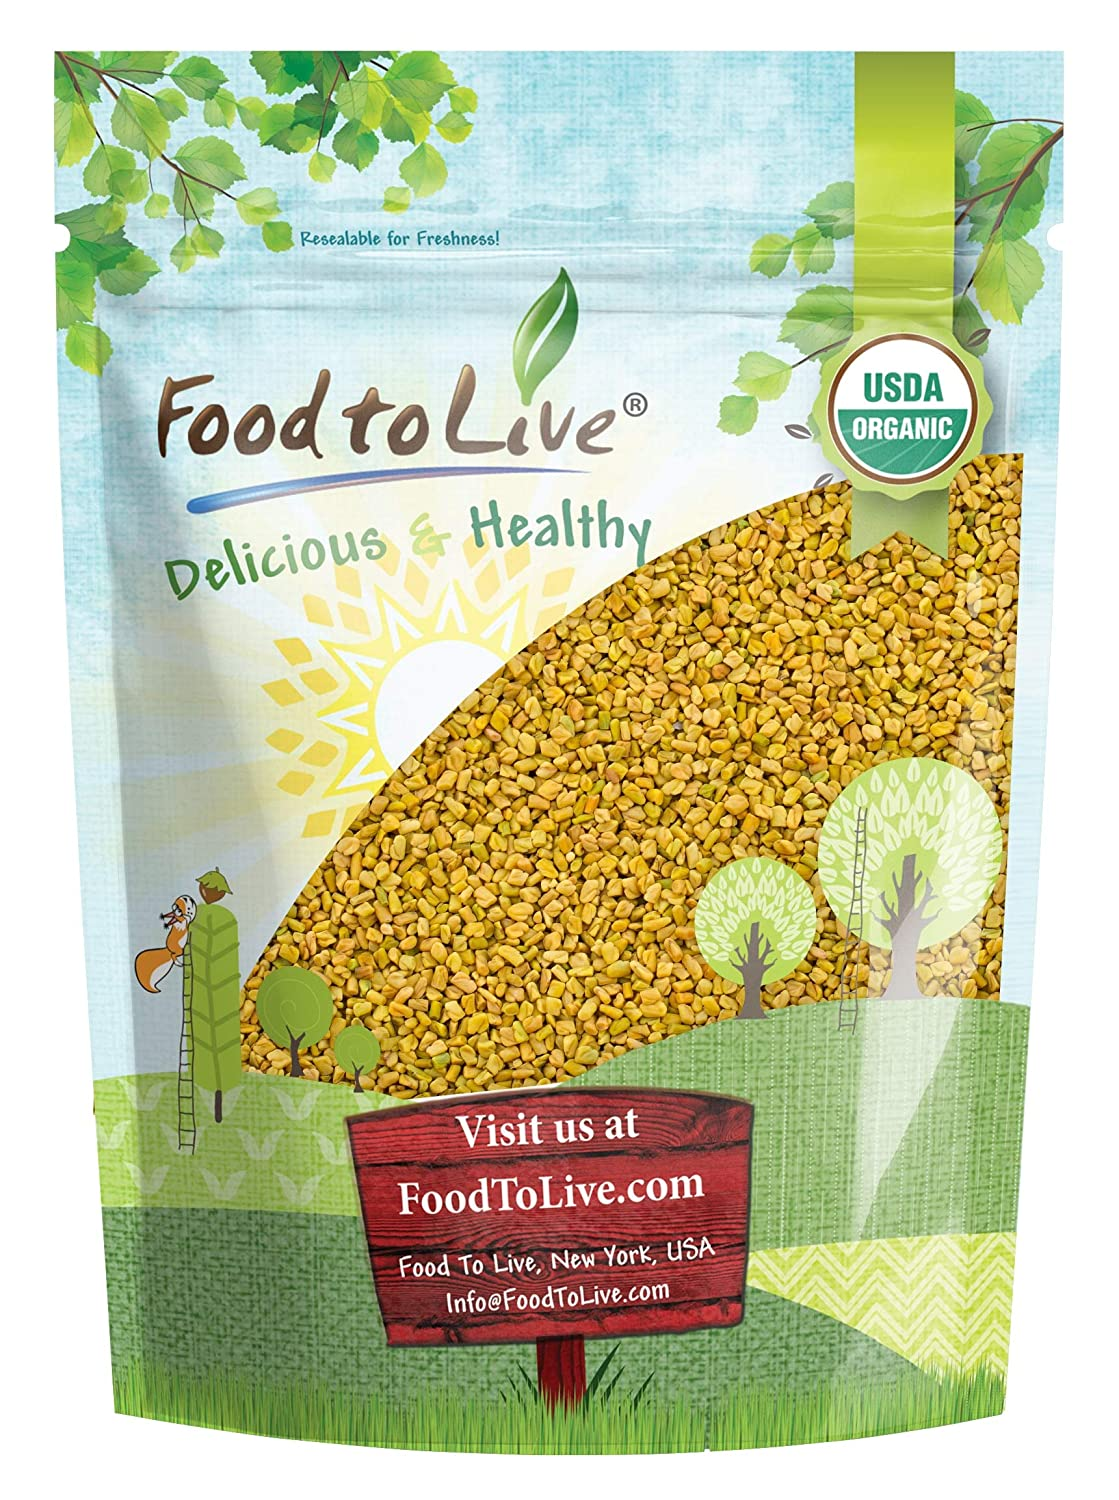 Organic Complete Free Shipping Max 63% OFF Fenugreek Seeds 2.5 Pounds M — Raw Non-GMO Whole